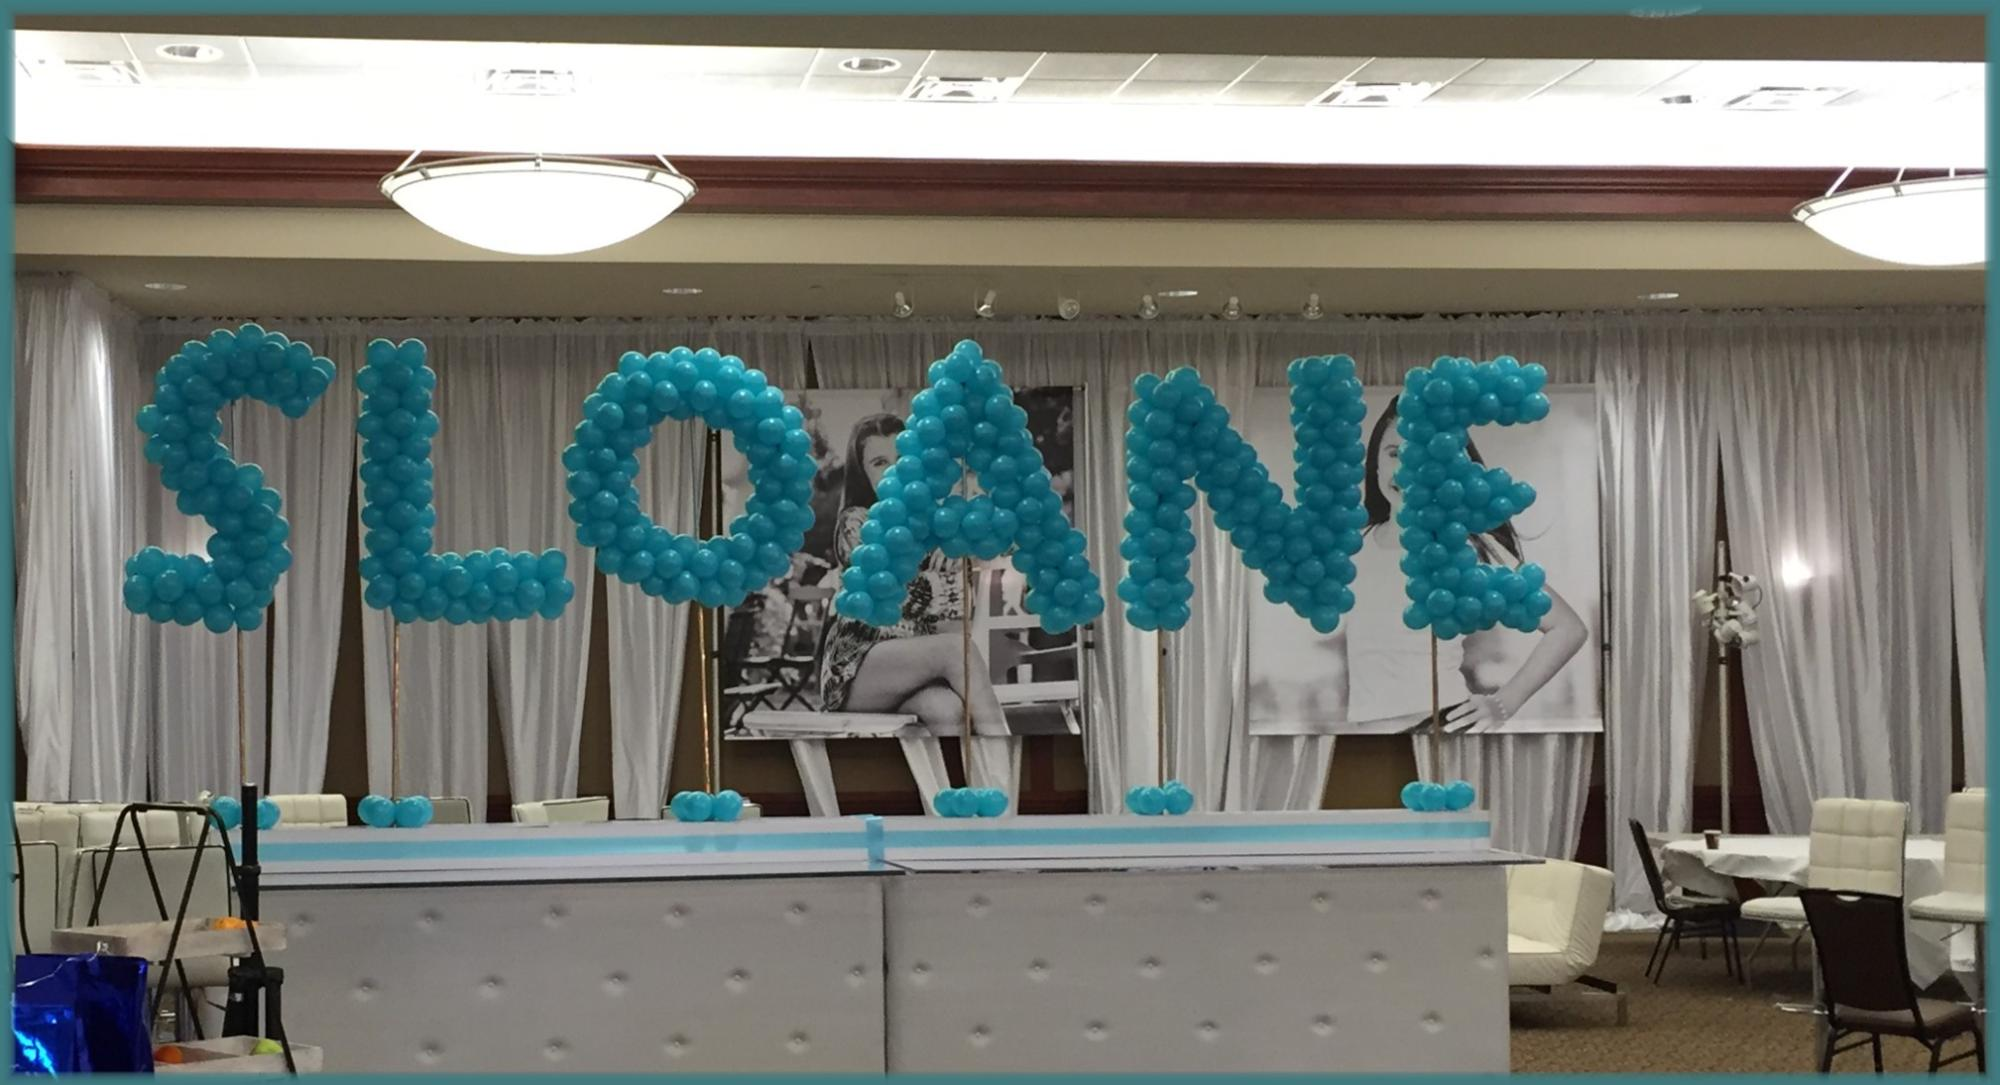 BatMitzvah balloon letters